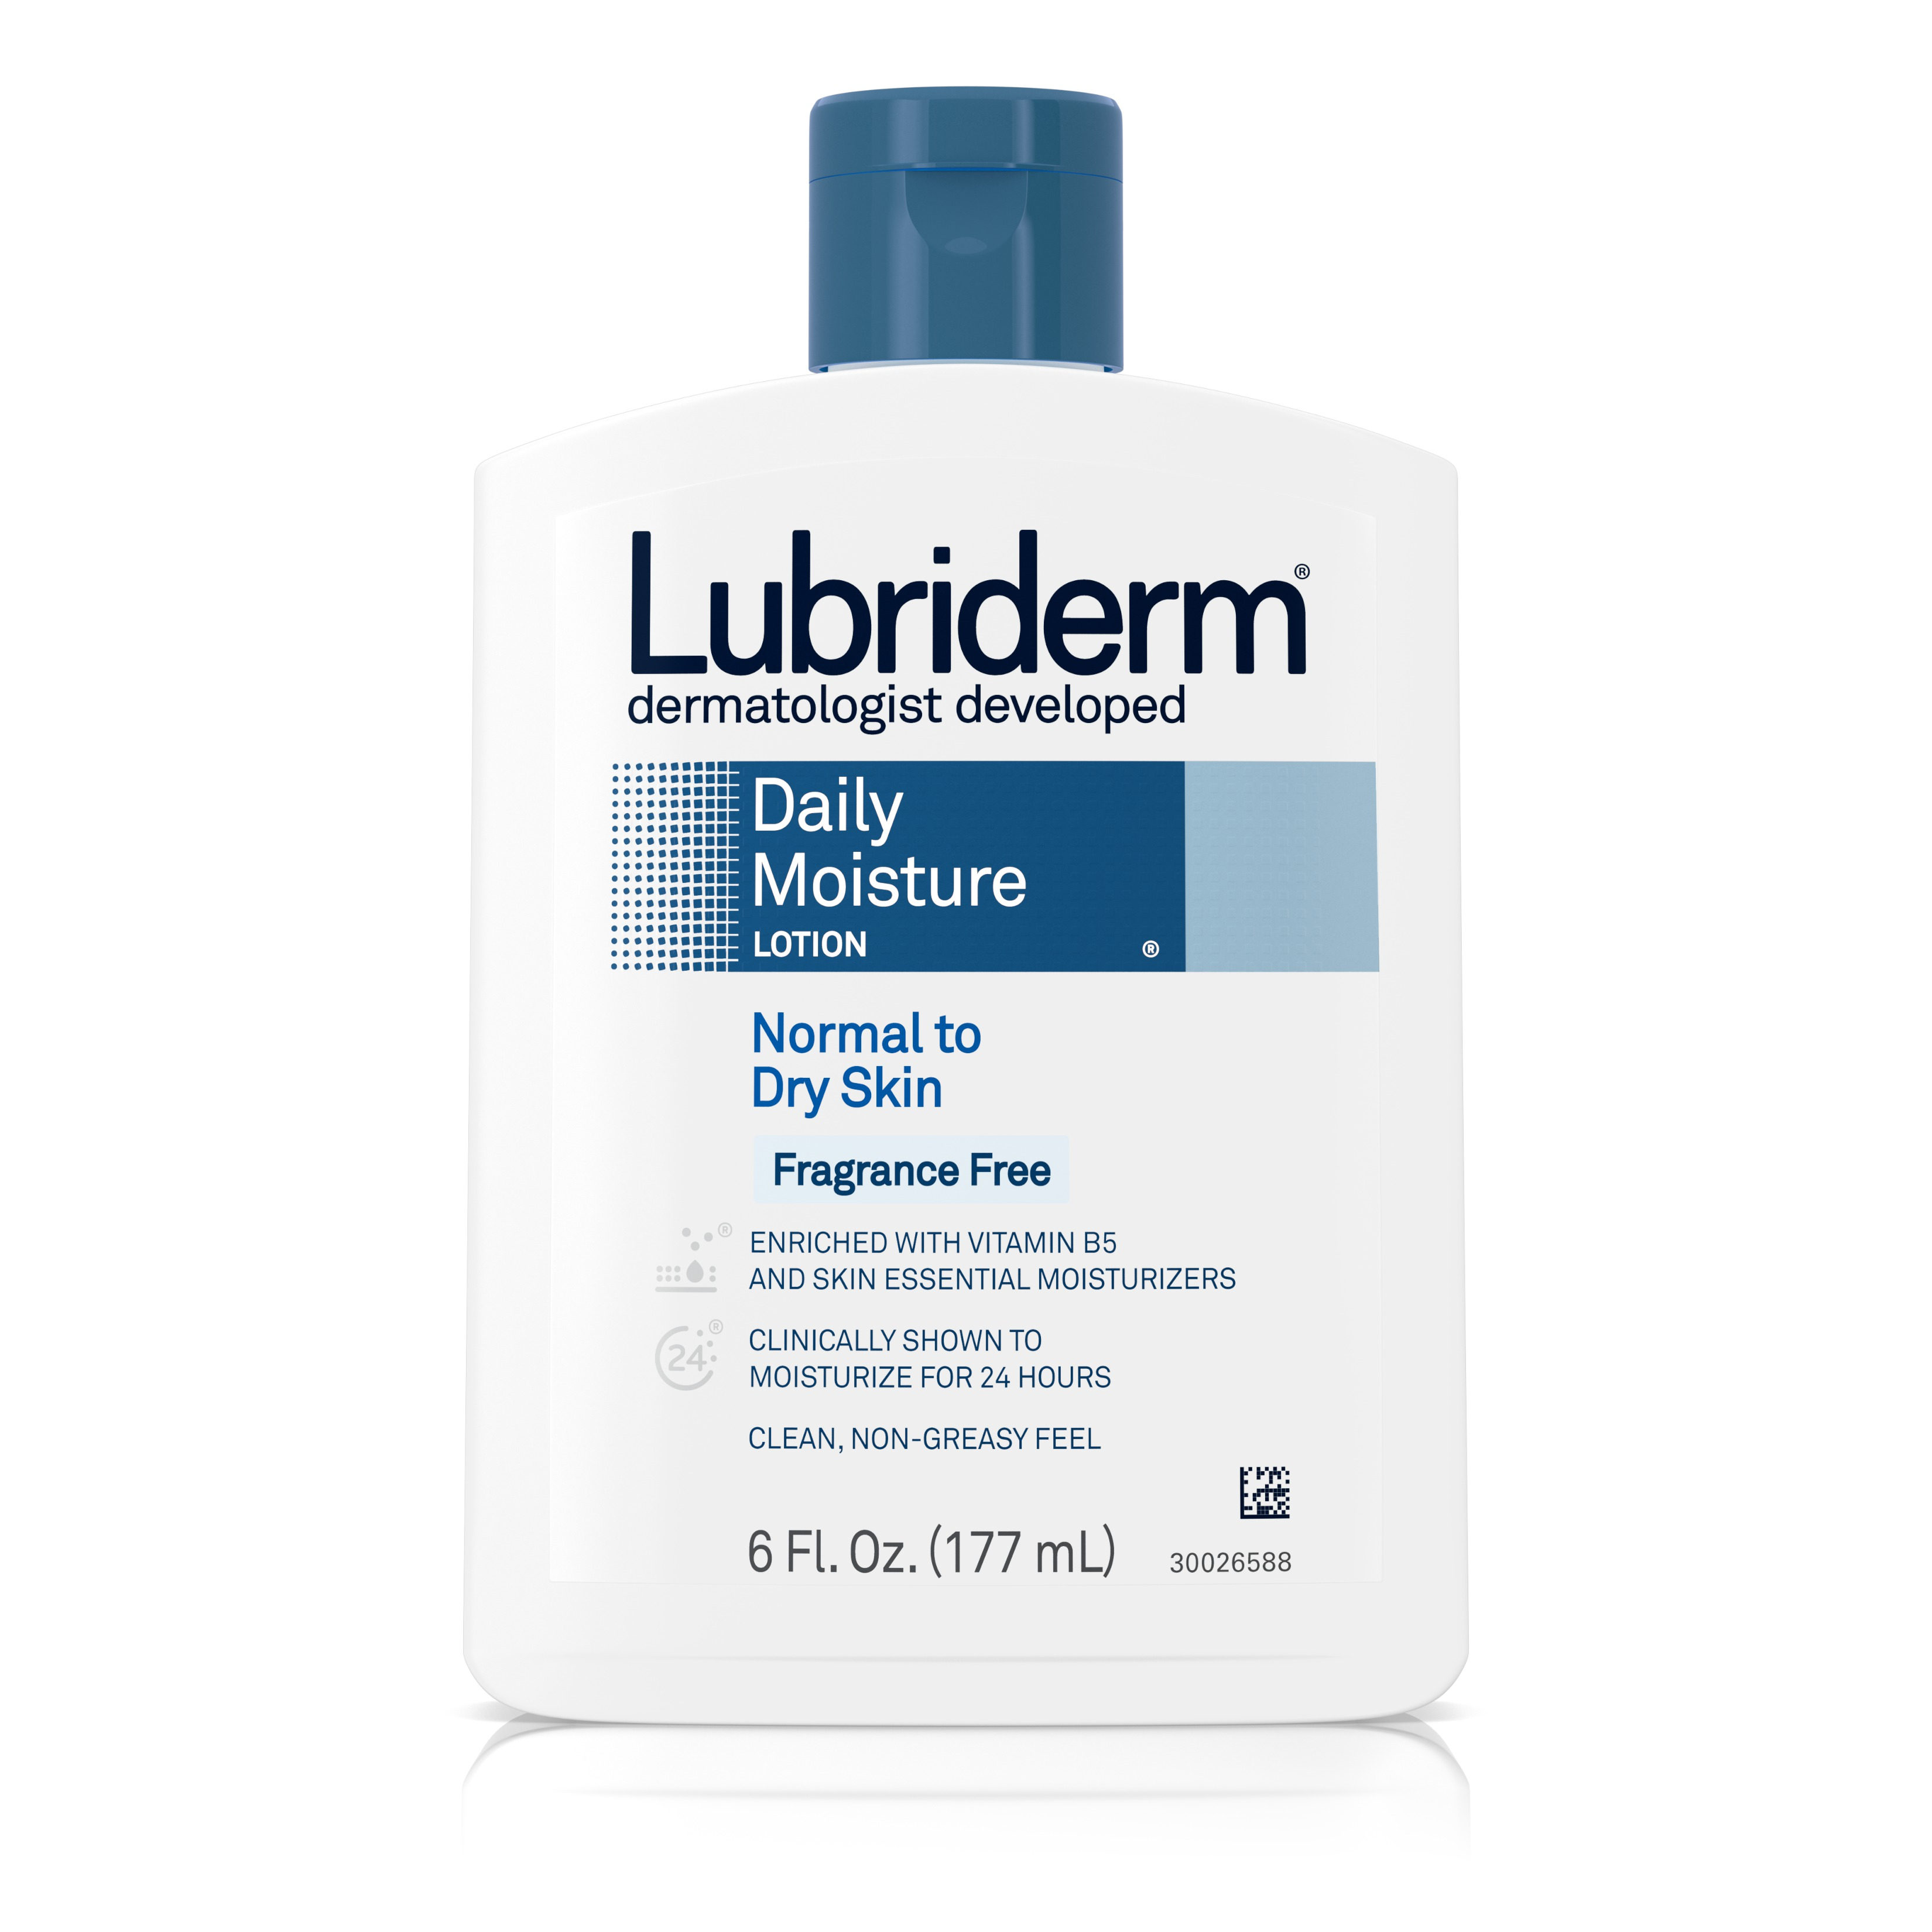 Lubriderm Daily Moisture Body Lotion, Fragrance-Free, 6 fl. oz